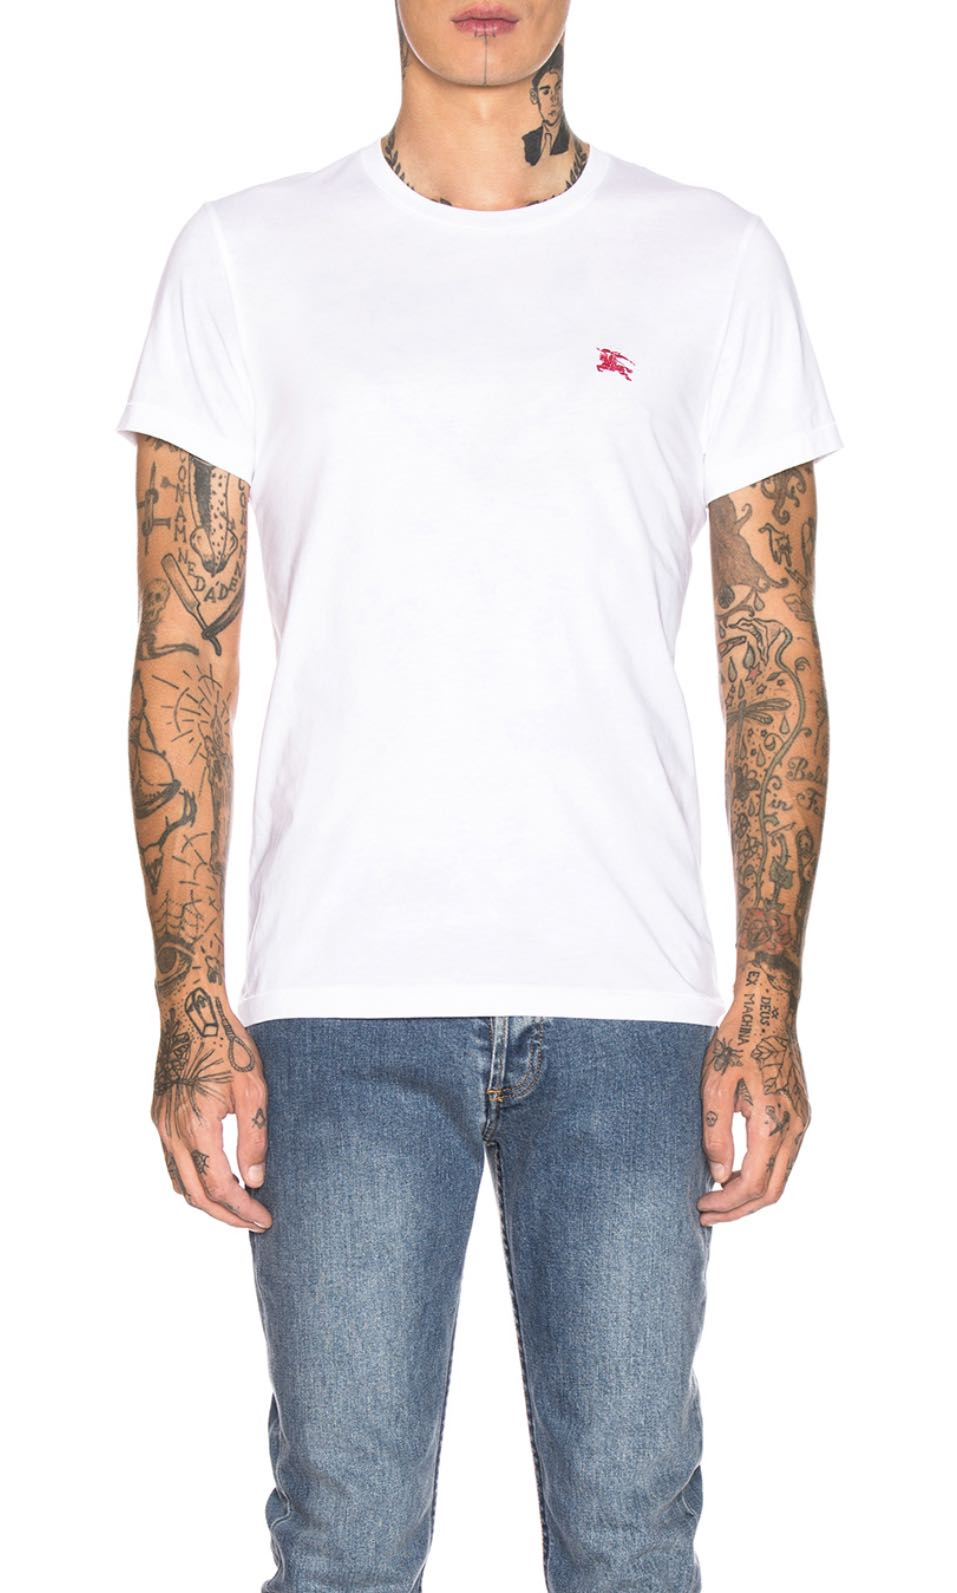 burberry joeforth t shirt